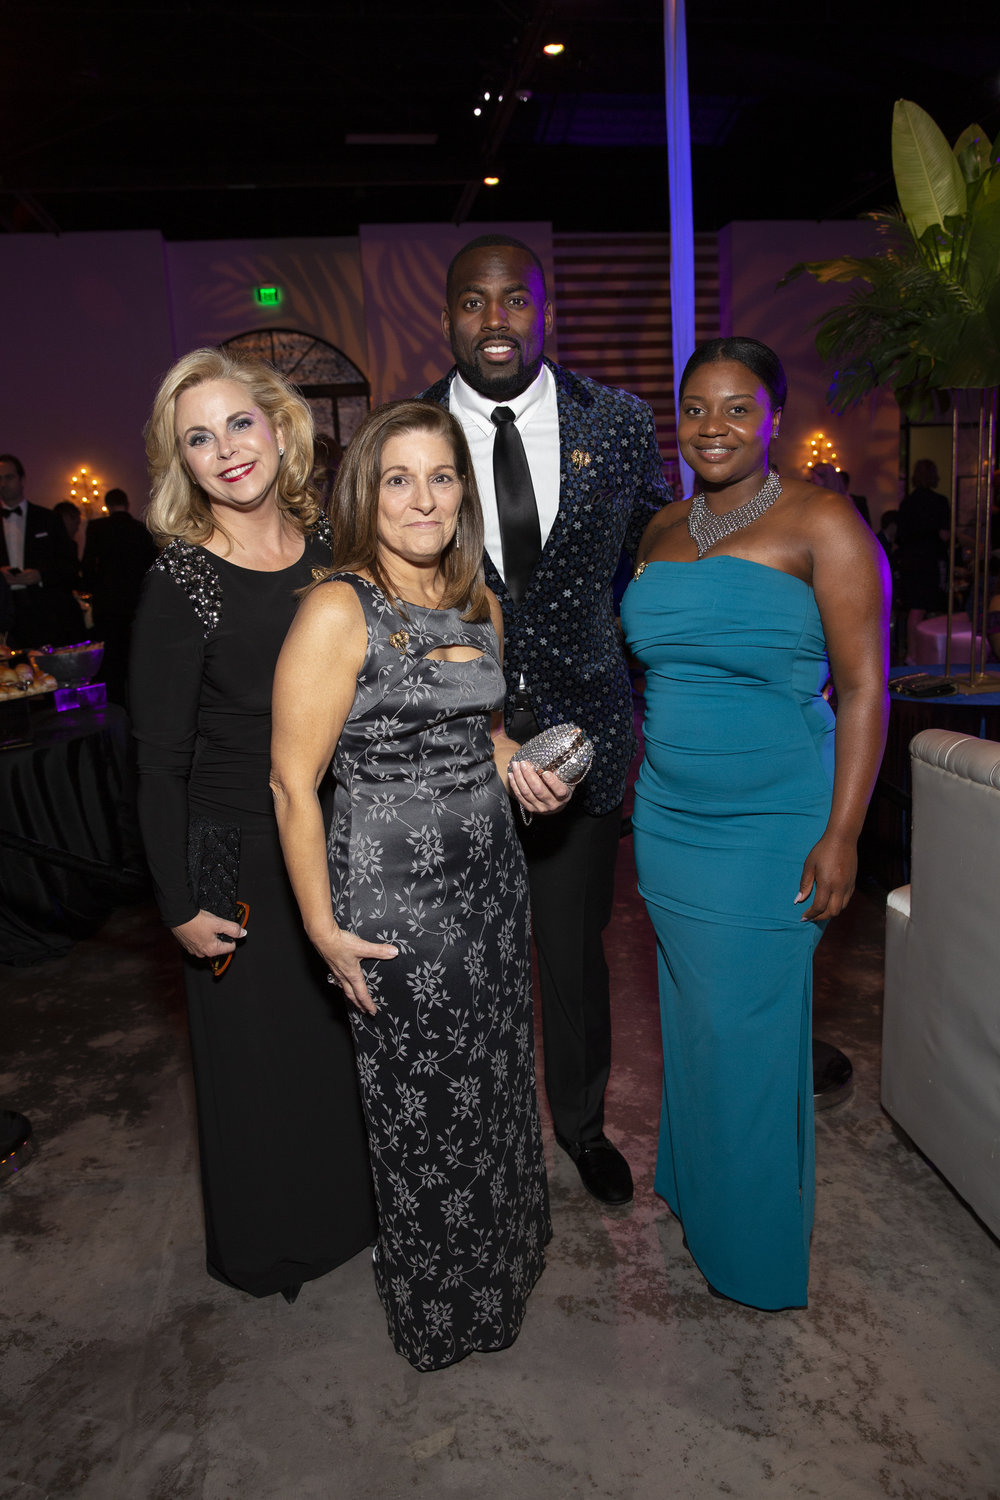 Jackie Sheahan, Valerie Forte, Whitney Mercilus, Ajalee Pulley; Photo by Jenny Antill.jpg